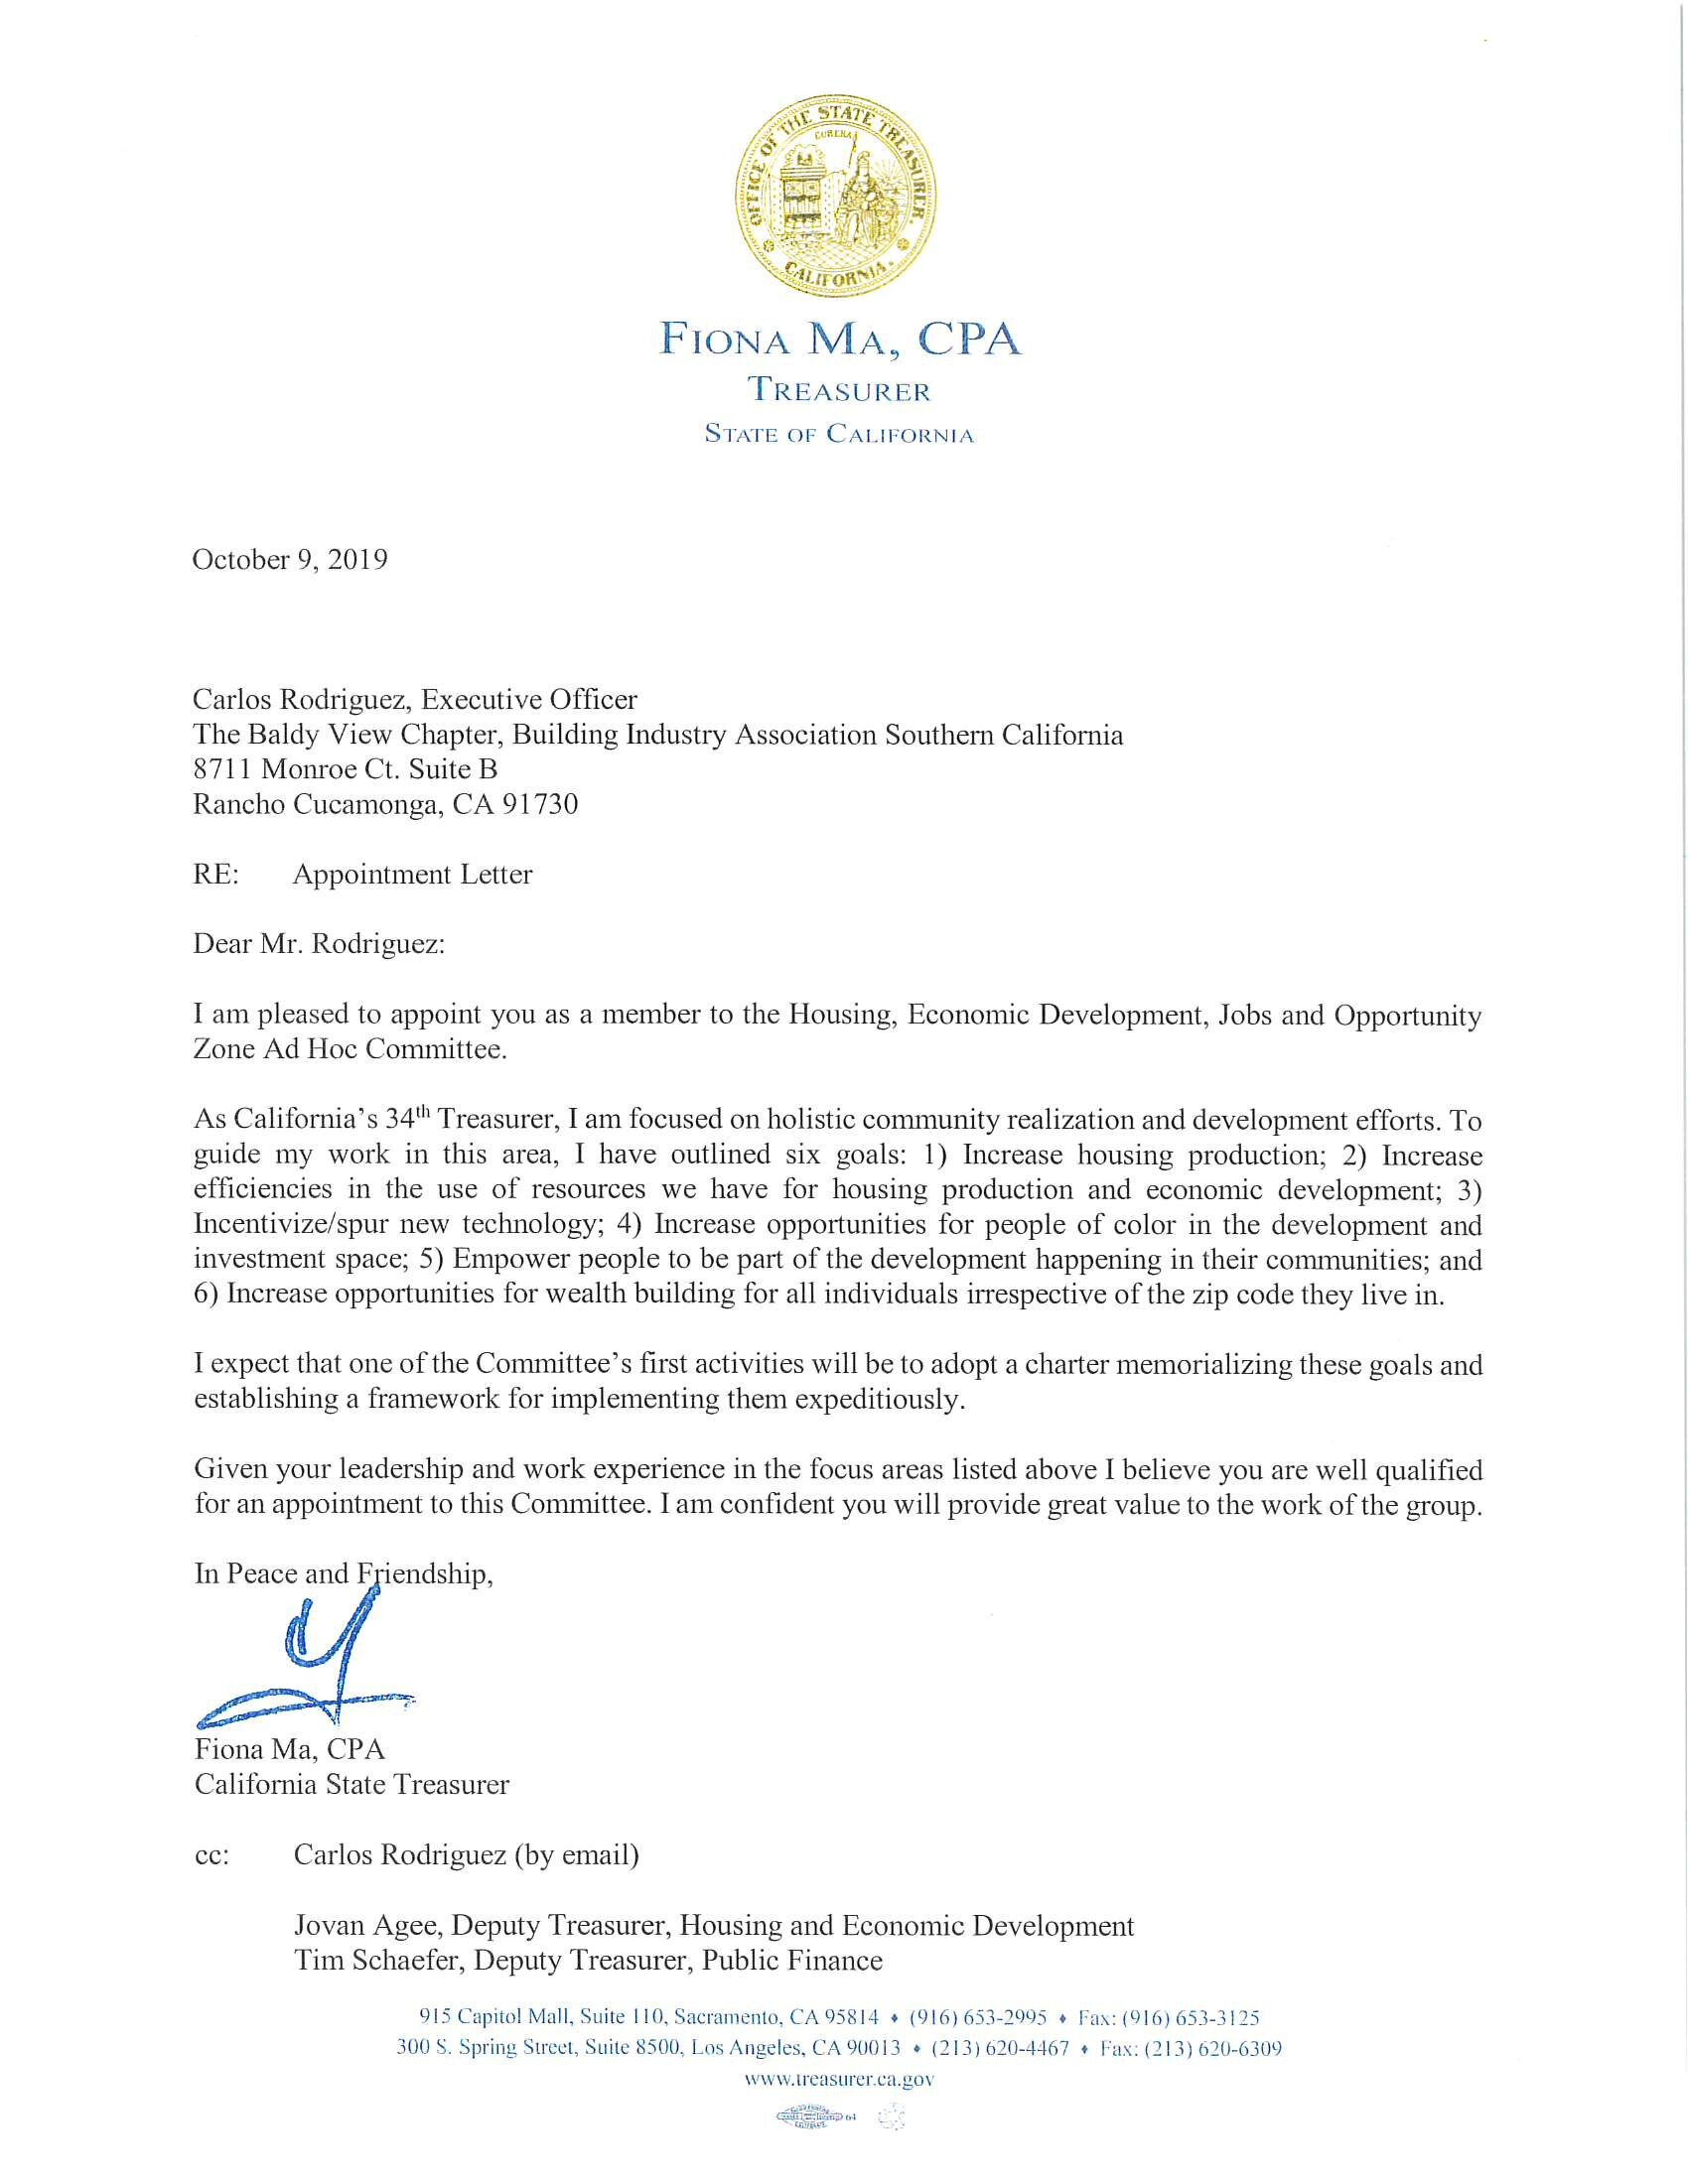 Letter of Appointment for Carlos Rodriguez.jpg